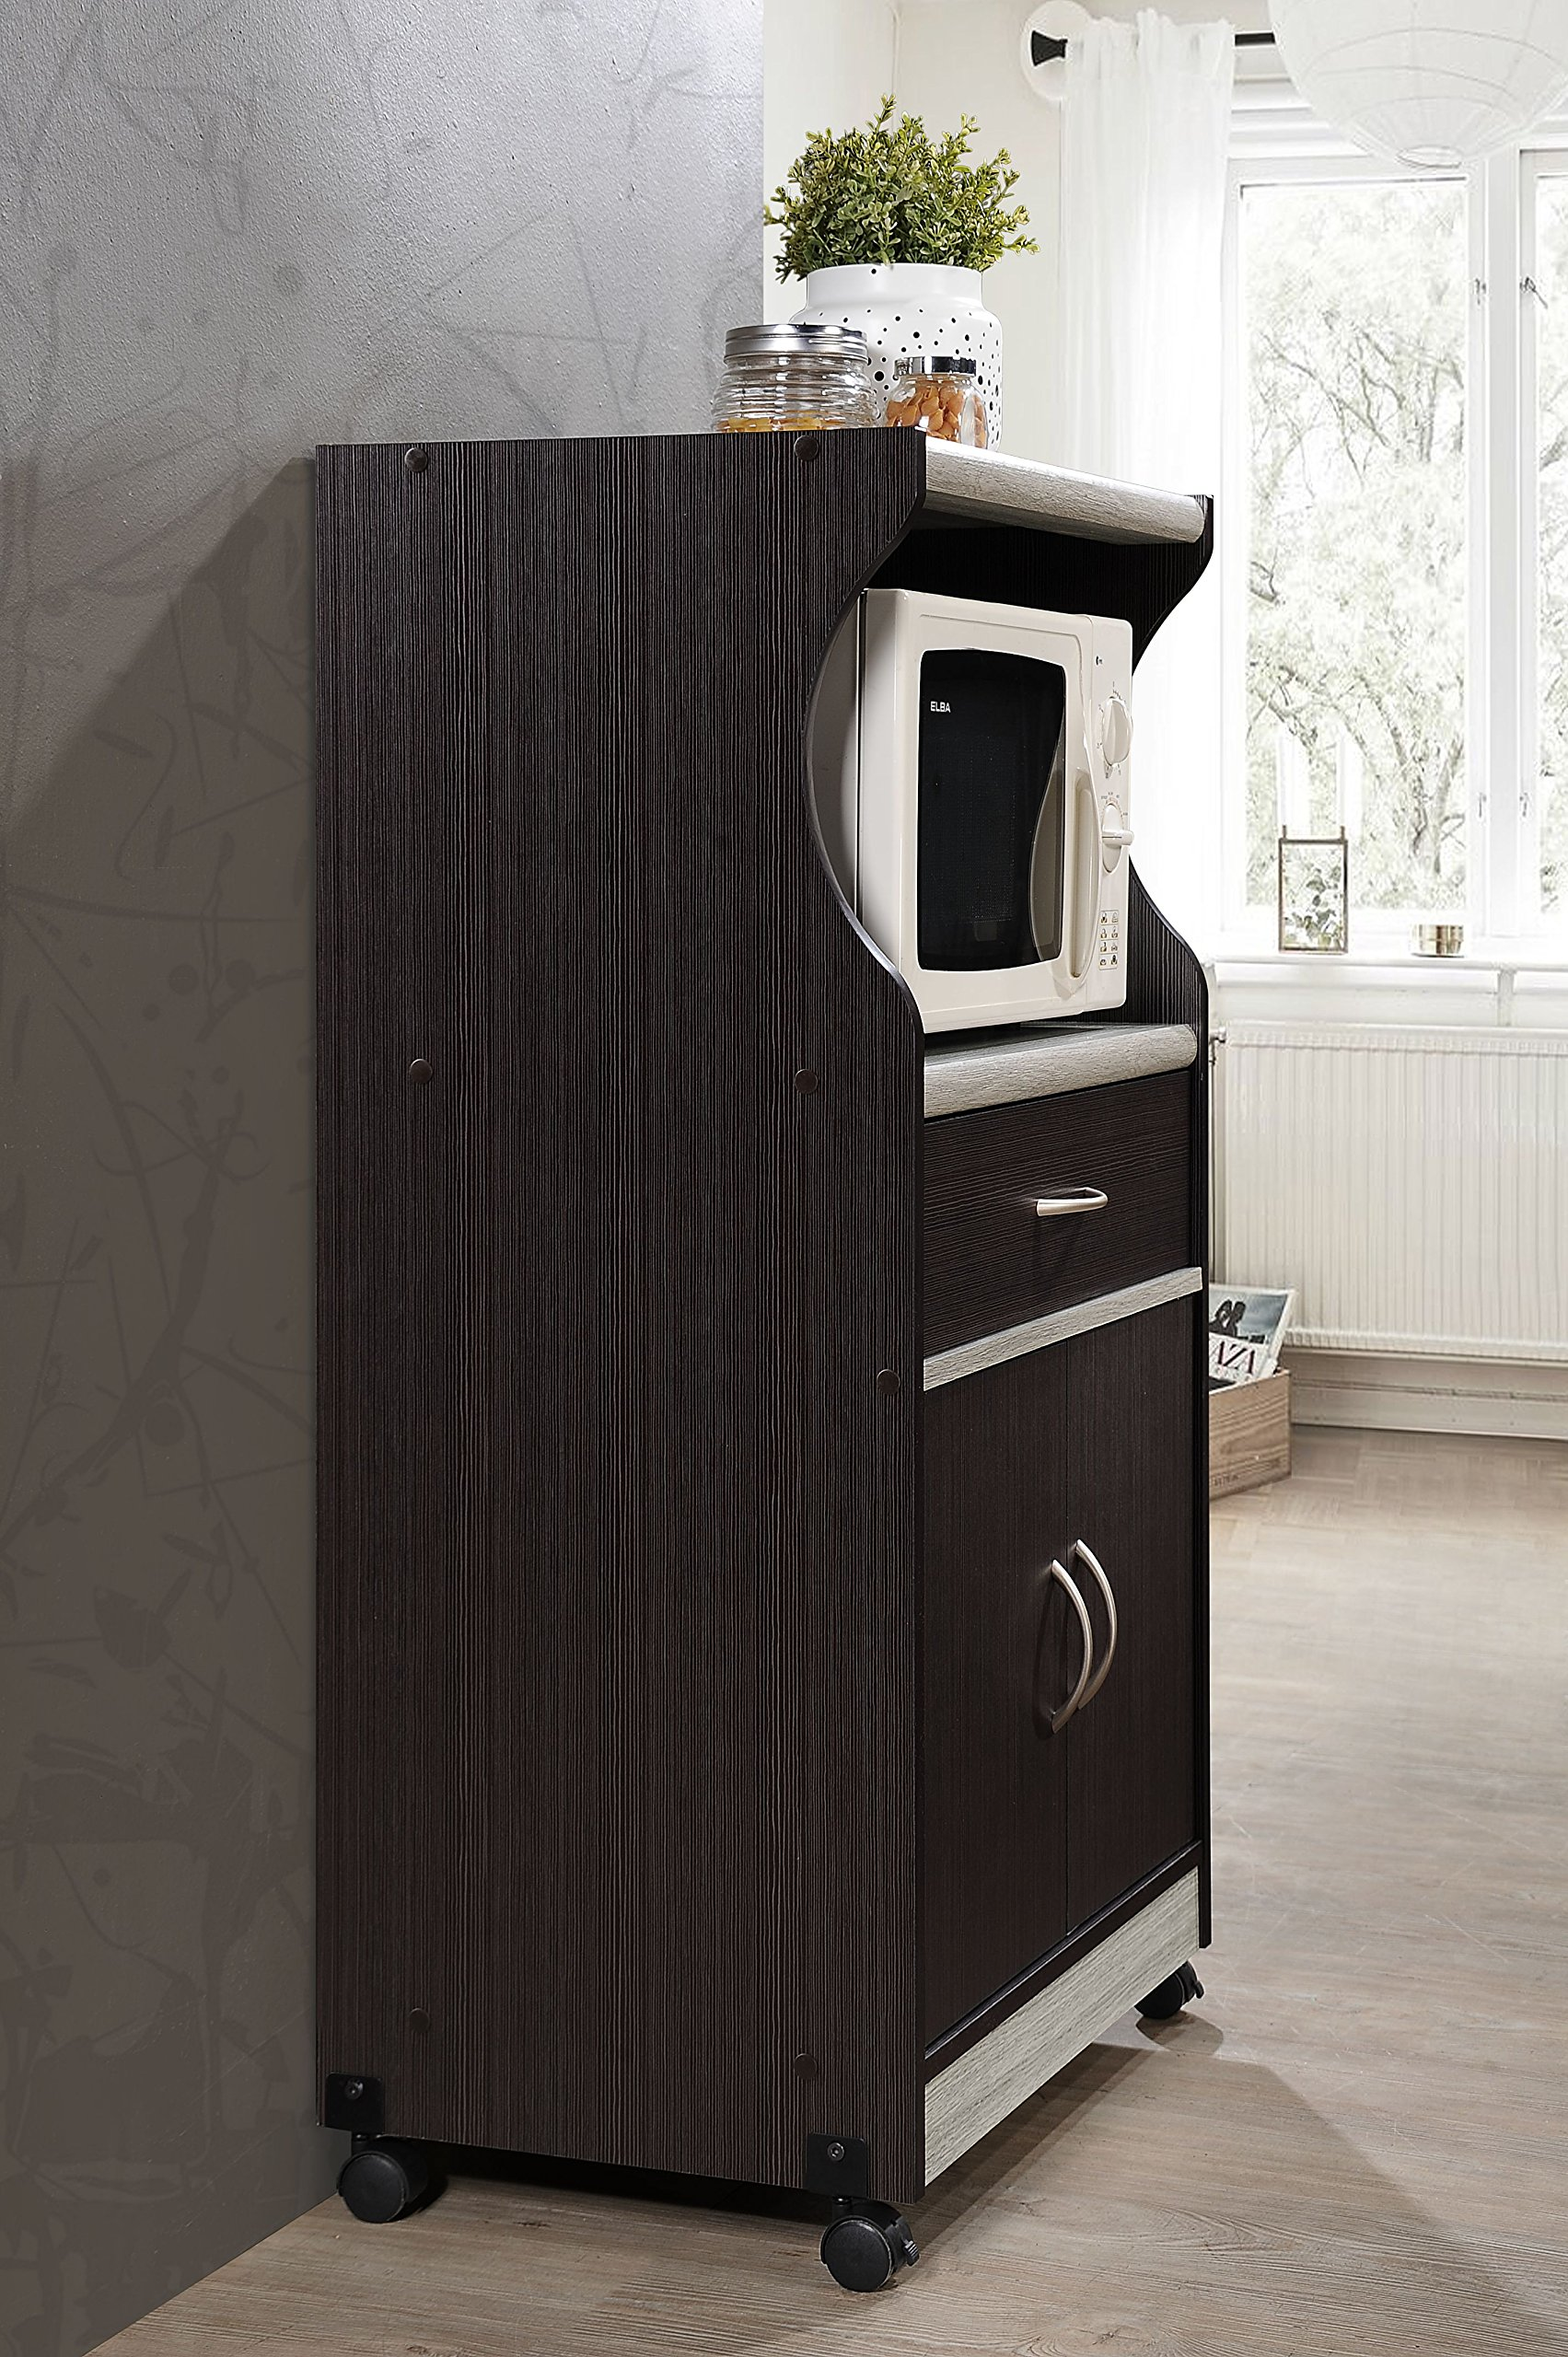 Hodedah Microwave Cart with One Drawer, Two Doors, and Shelf for Storage, Chocolate by HODEDAH IMPORT (Image #3)